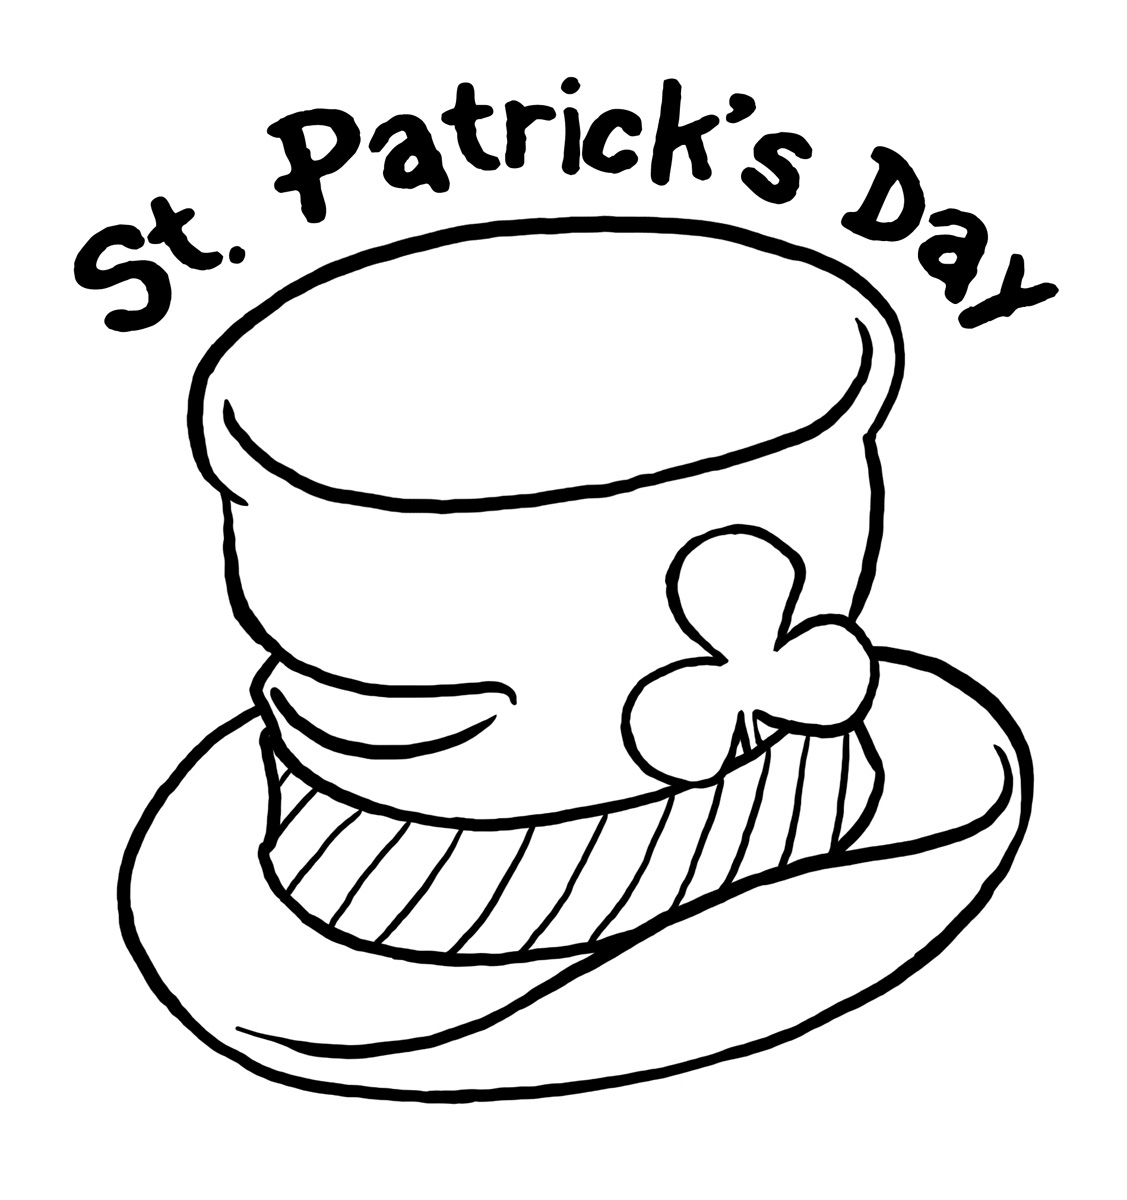 St Patricks Day Coloring Pages St Patrick S Day Coloring Pages Free Prin St Patricks Coloring Sheets St Patricks Day Clipart St Patricks Day Crafts For Kids